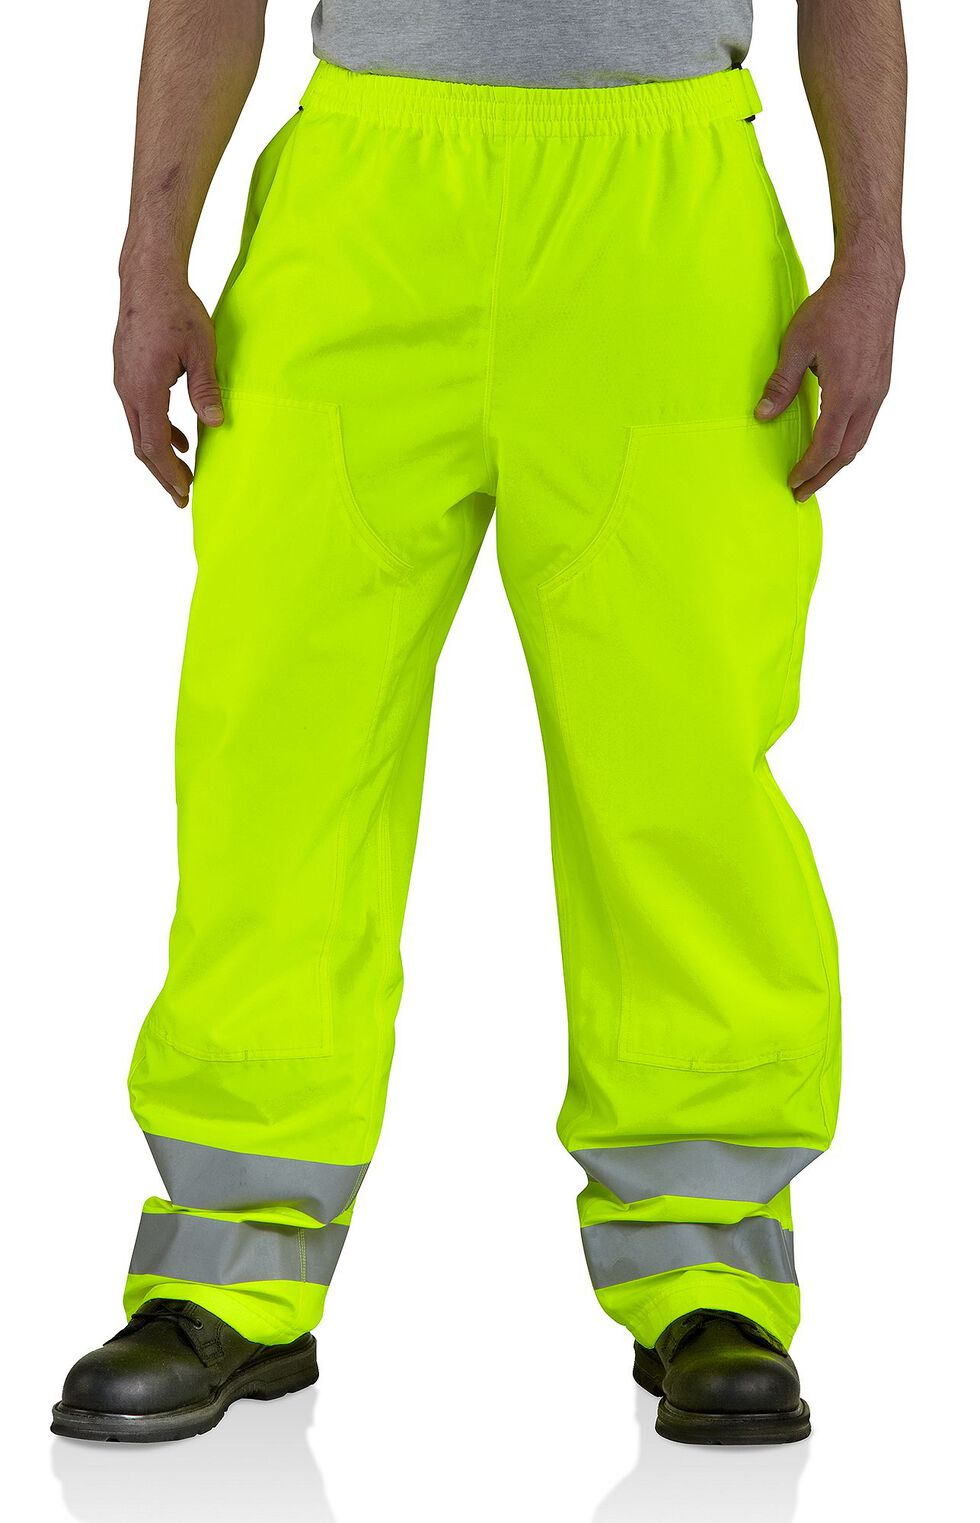 Carhartt High-Visibility Class E Waterproof Pants - Big & Tall, Lime, hi-res